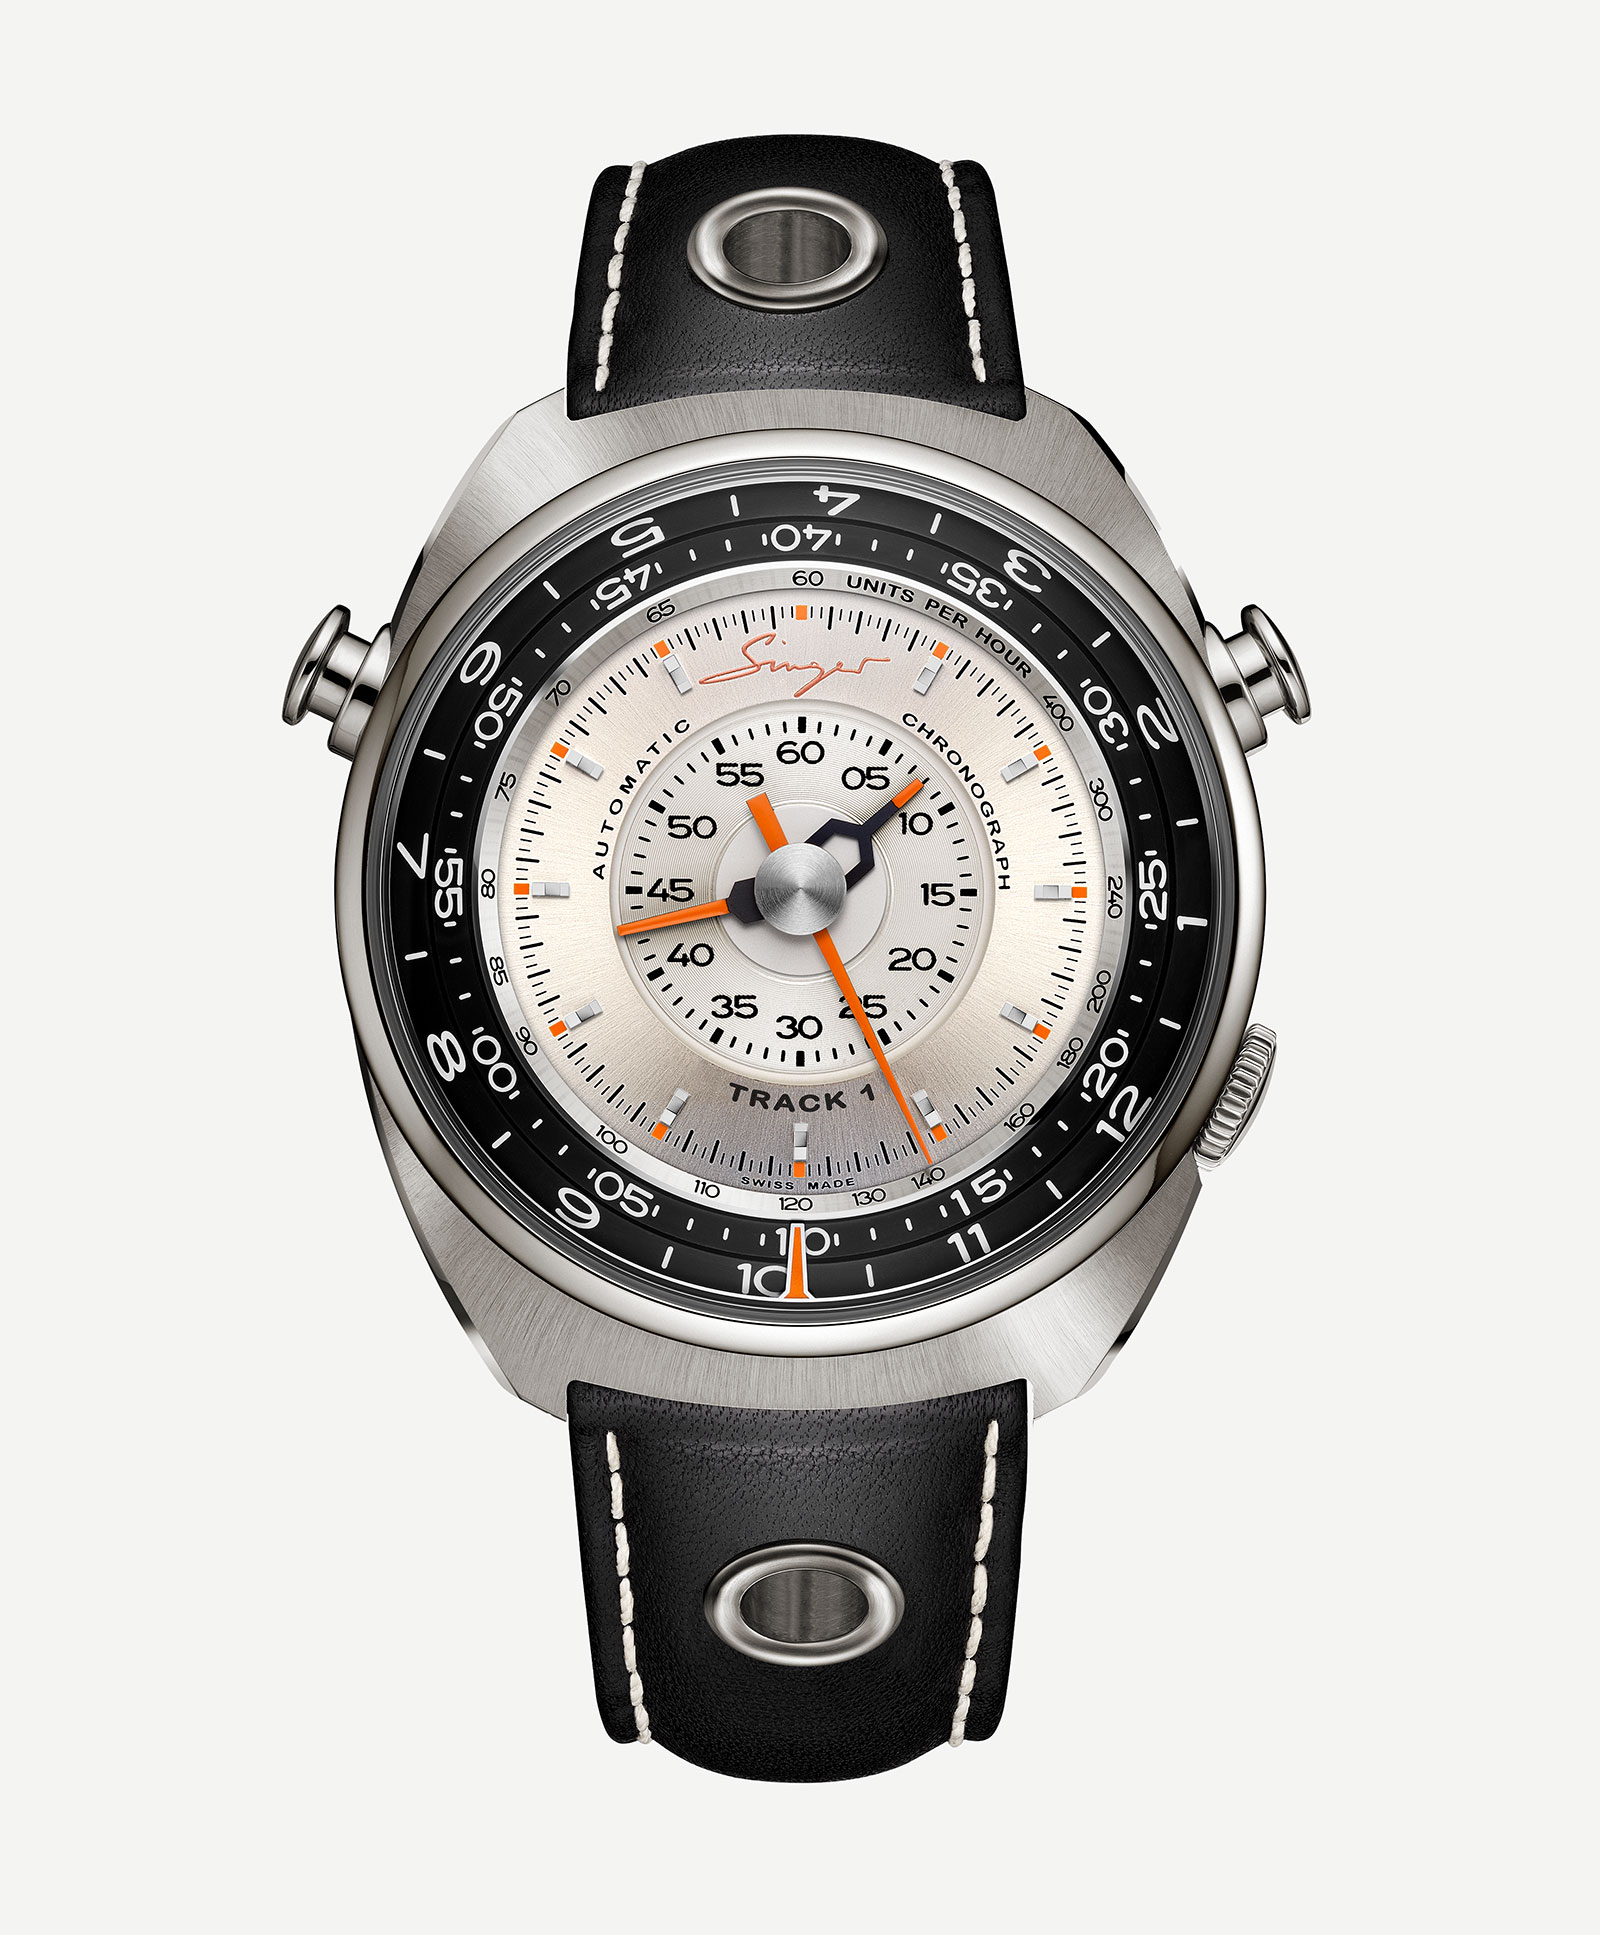 Singer Track 1 Chronograph Watch 6